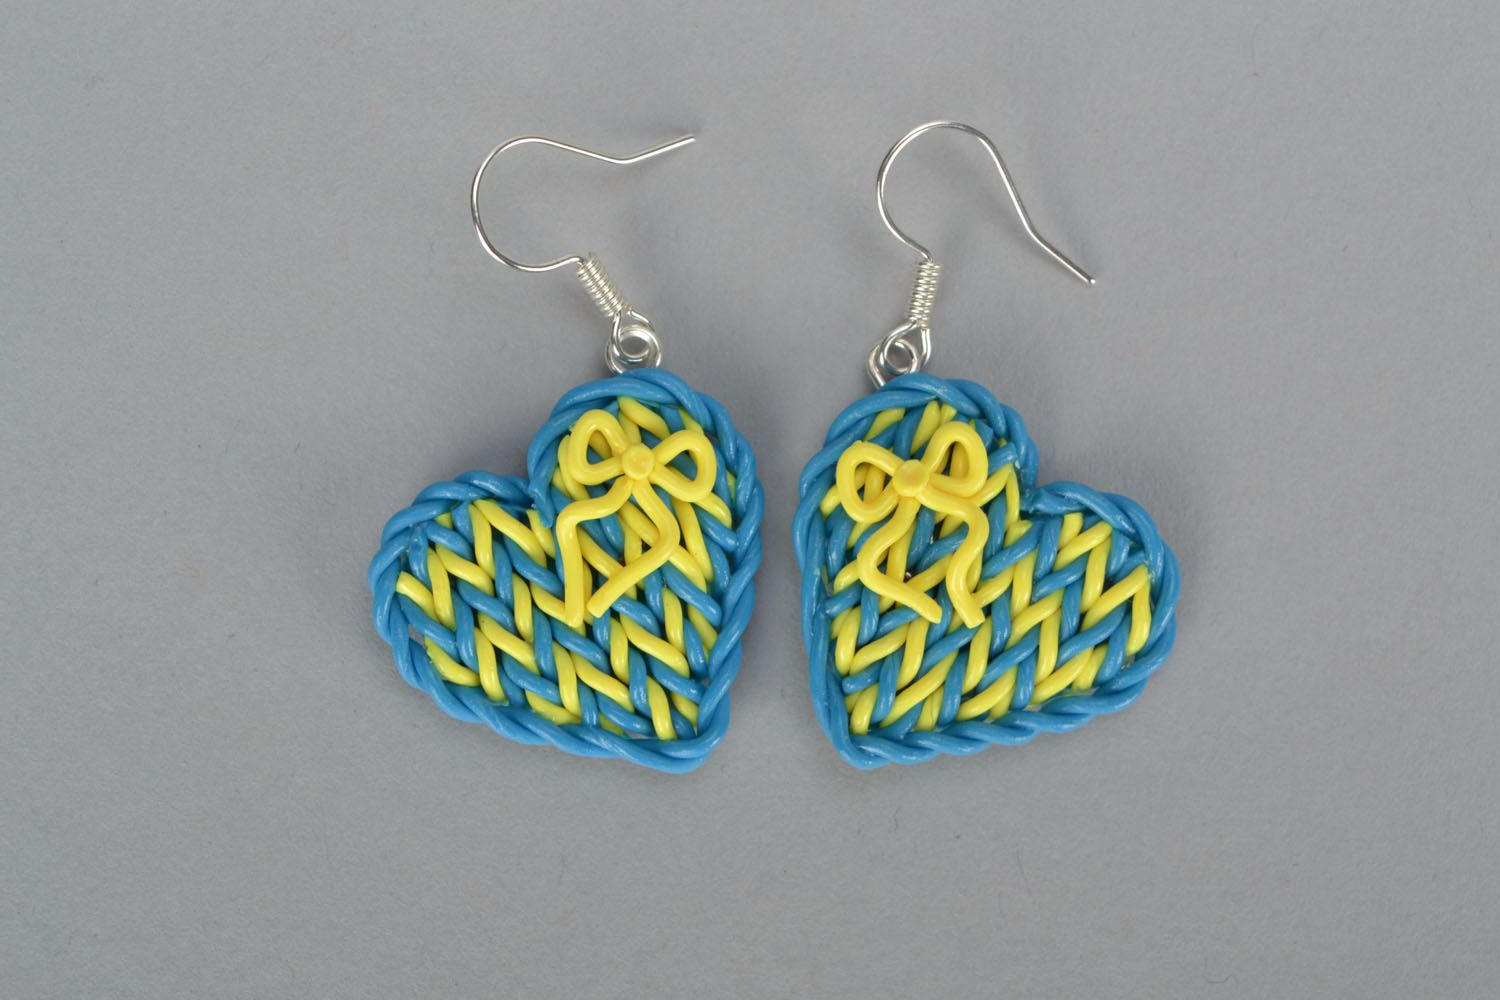 Plastic heart-shaped earrings photo 2